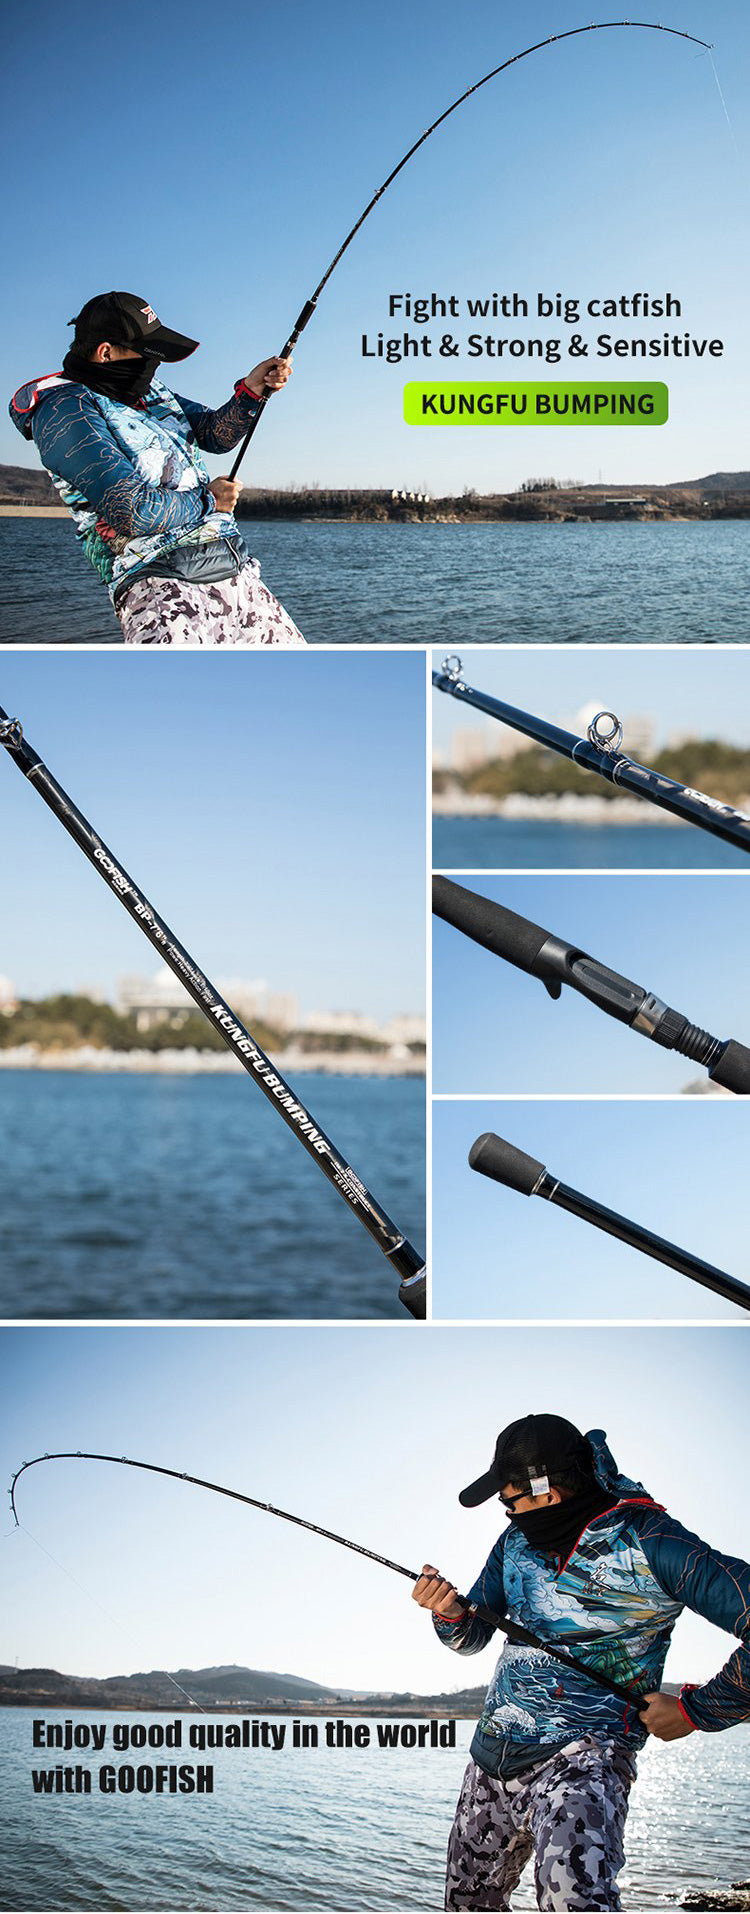 heavy light bumping catfish casting spinning fishing rod